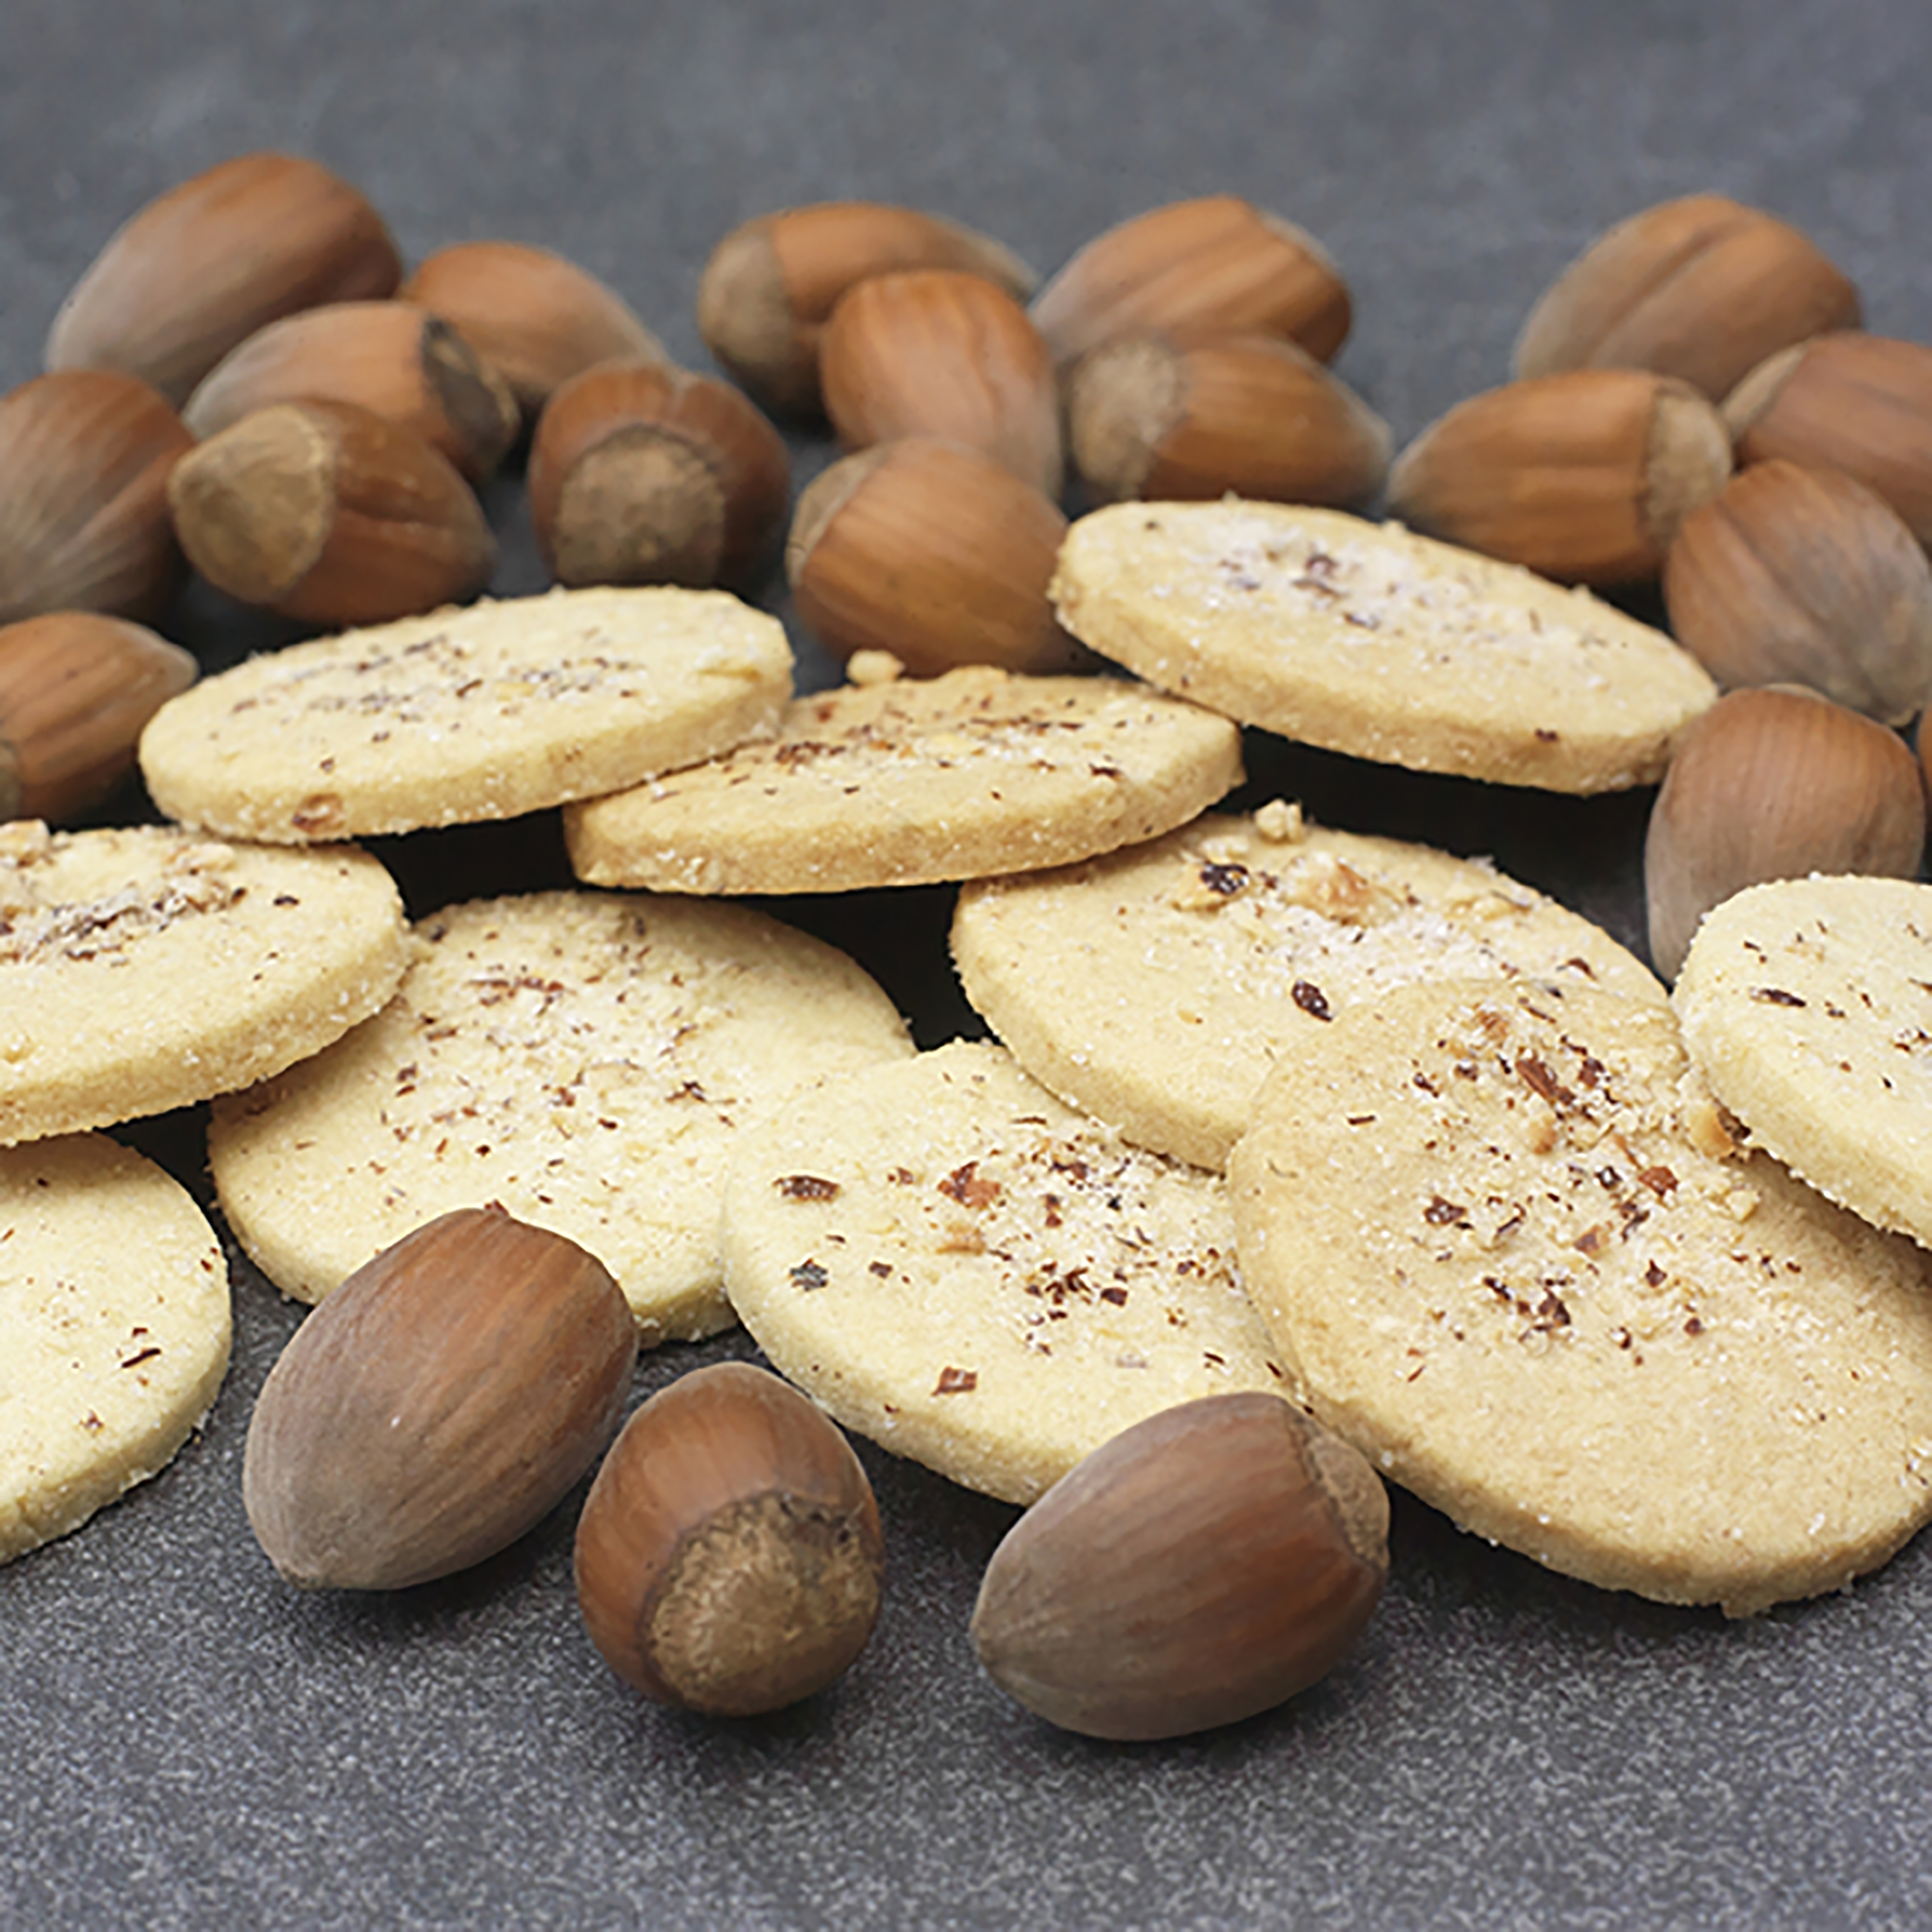 "Gregg Wallace, Telegraph Magazine - ""Cobnuts are a type of hazelnut that, once dried, have a lovely sweet flavour... and they taste superb in this lovely, buttery Handmade Kentish Cobnut Shortbread from Potash Farm in Kent"""